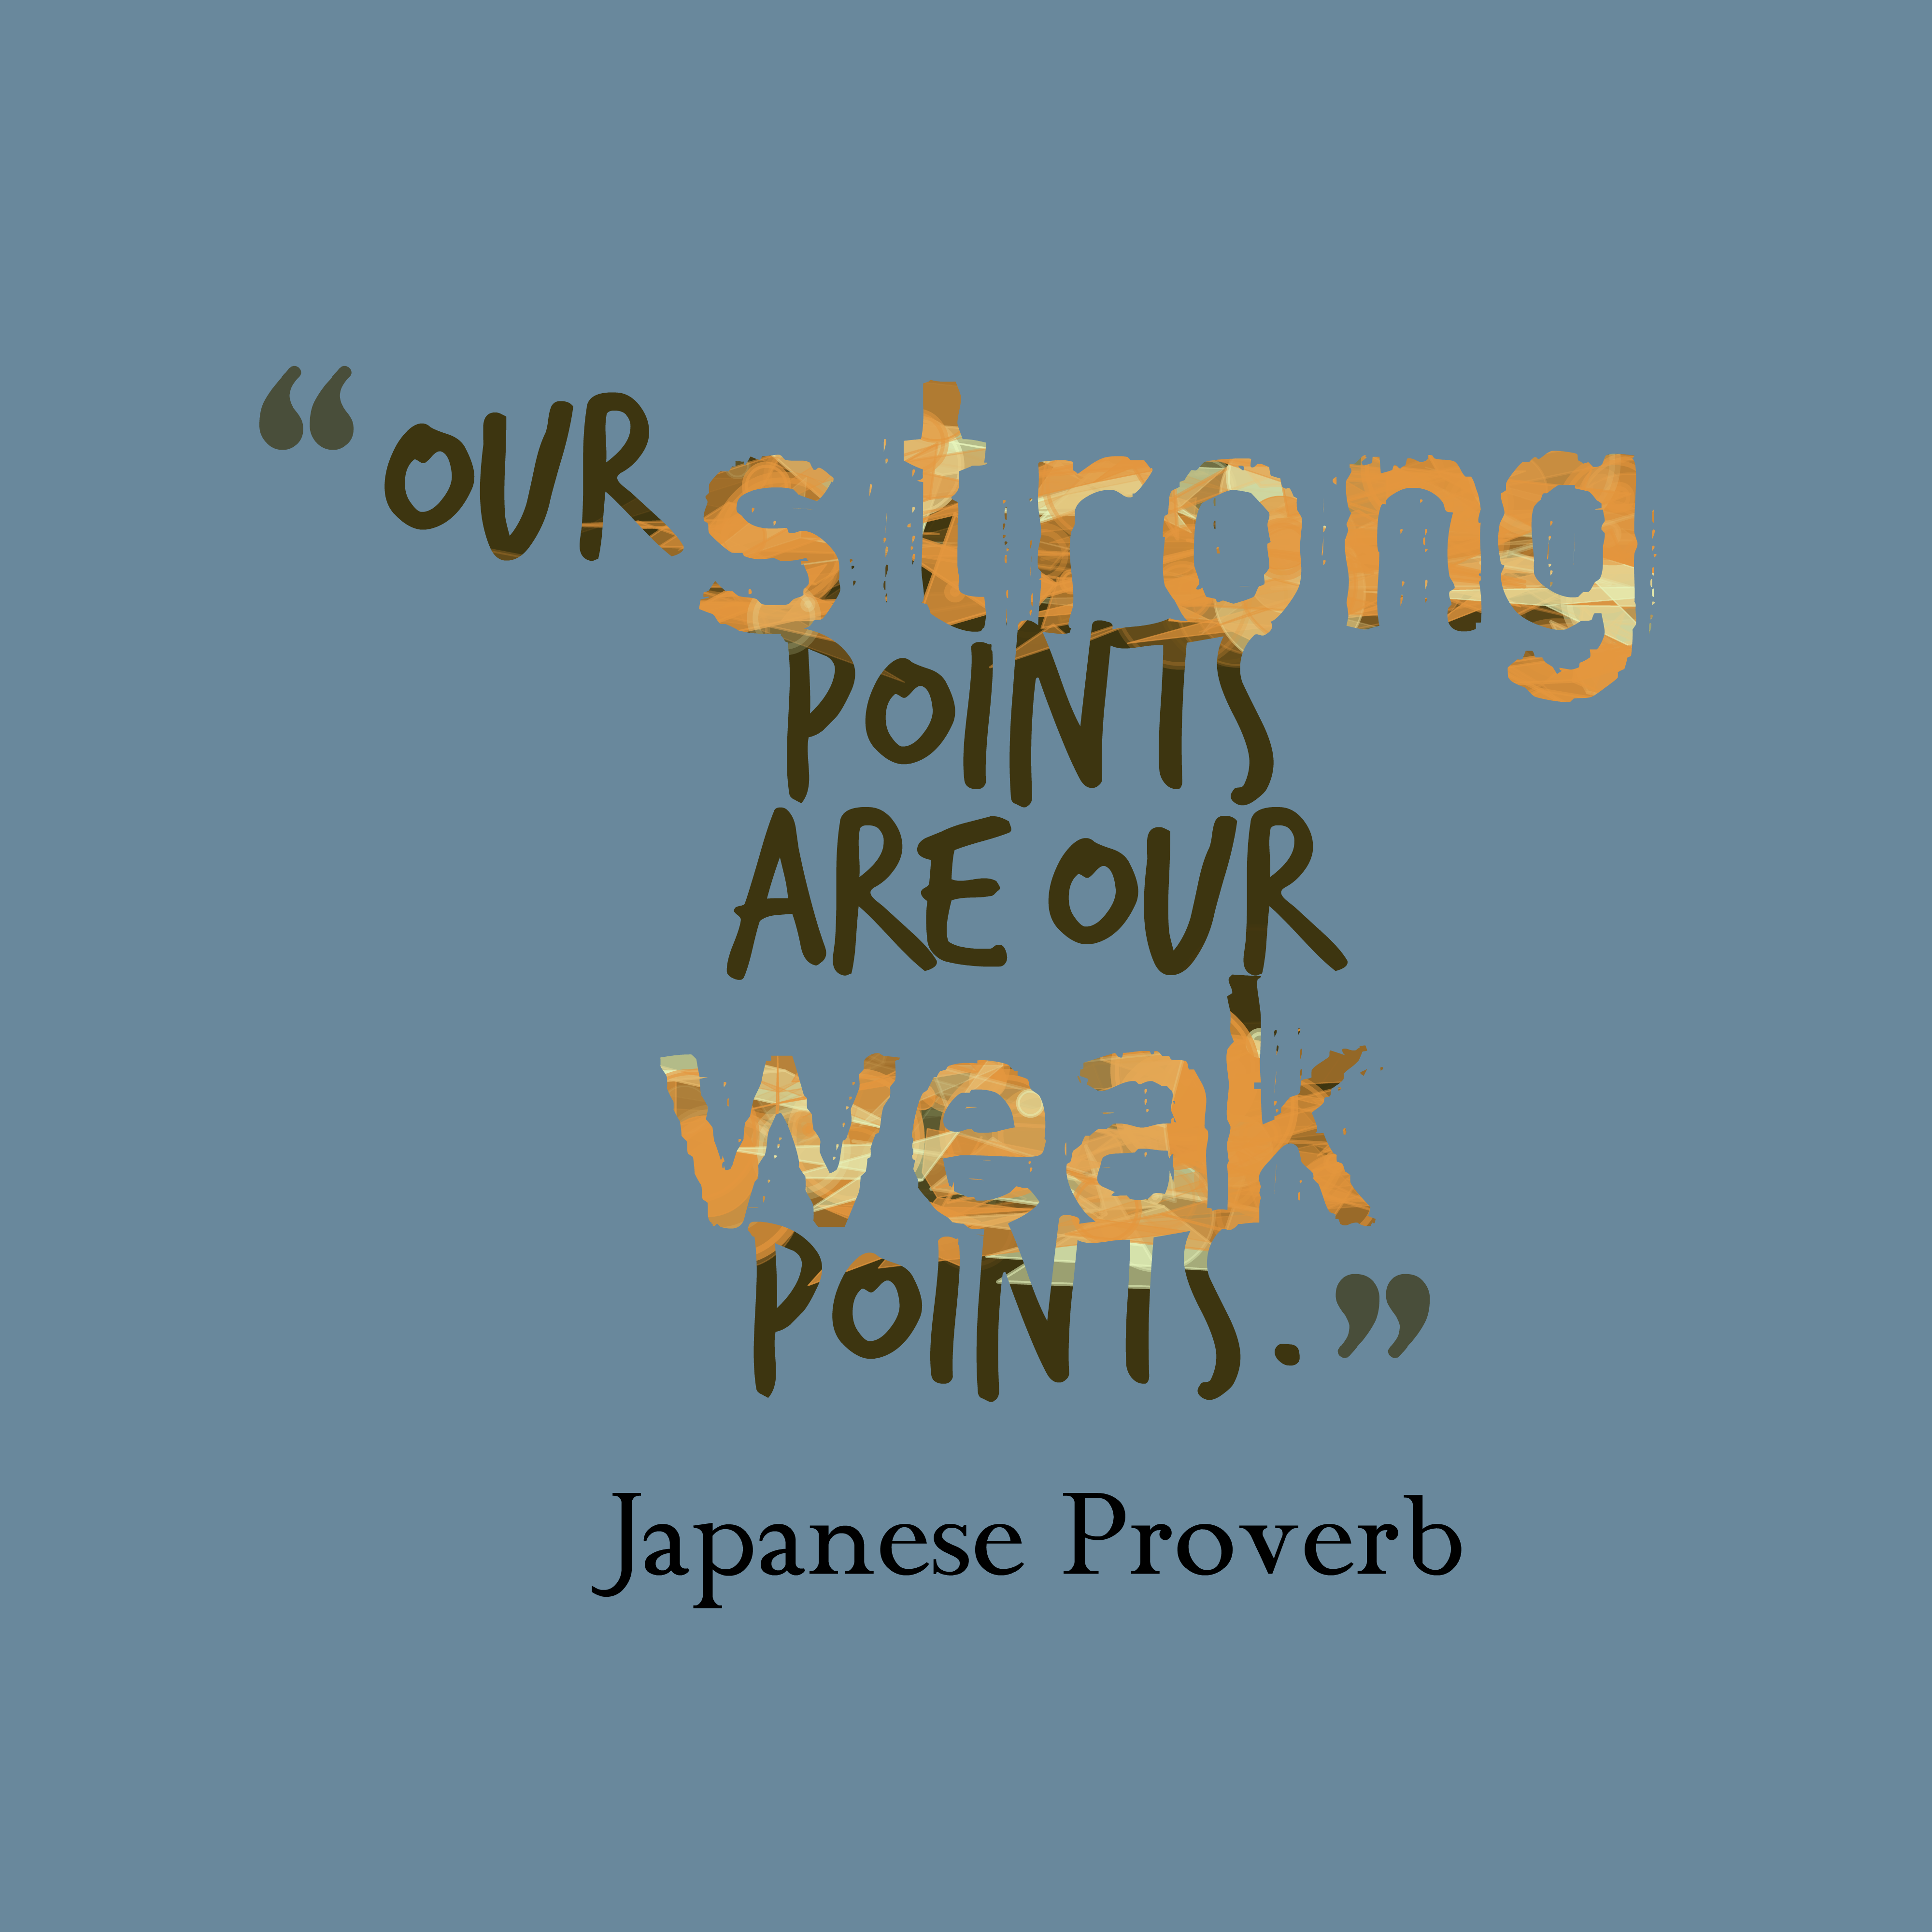 Quotes image of our strong points are our weak points.